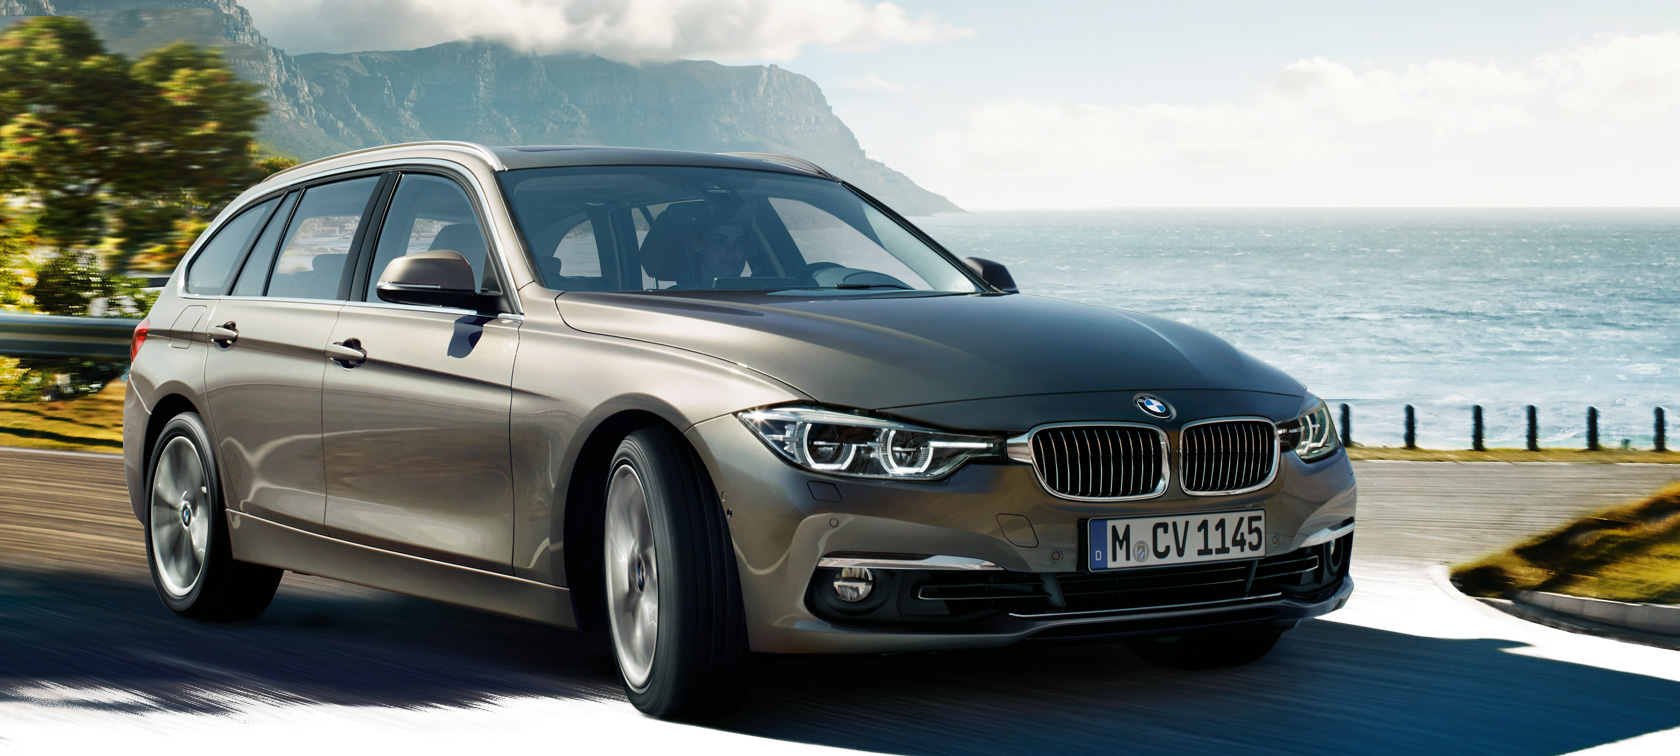 BMW 3 Series in brown metallic by mountains and lake.